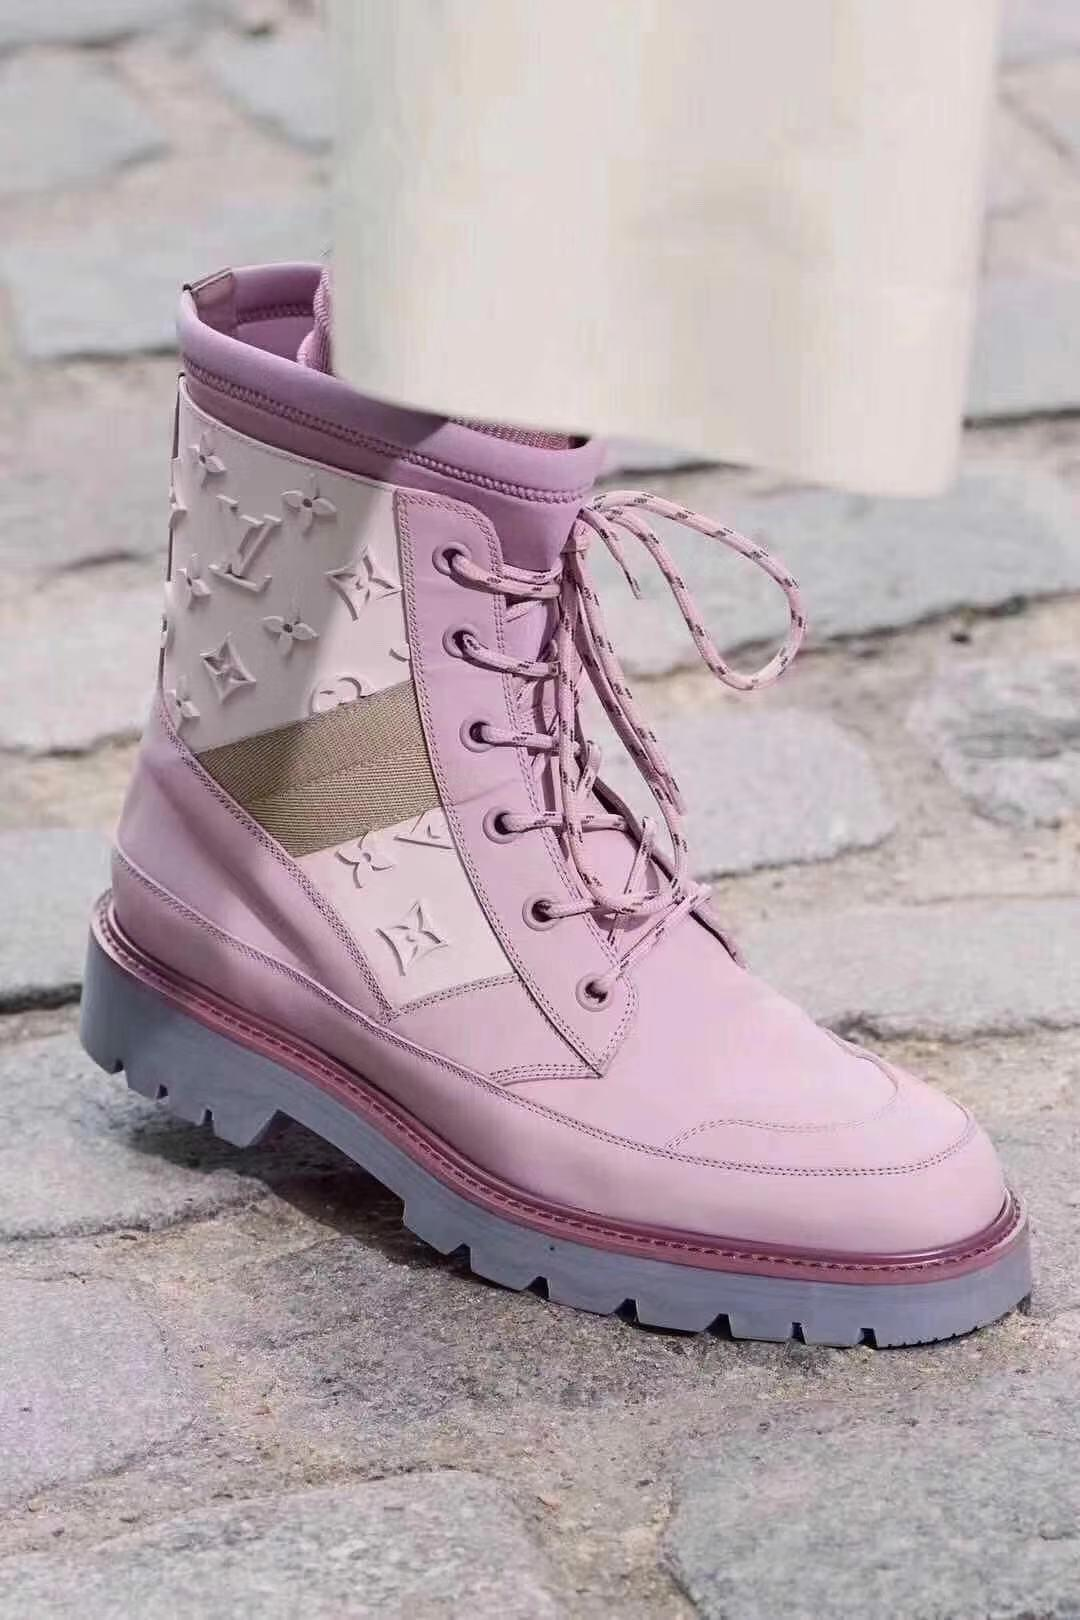 Image of Louis Vuitton LV Nfrontrow sneaker